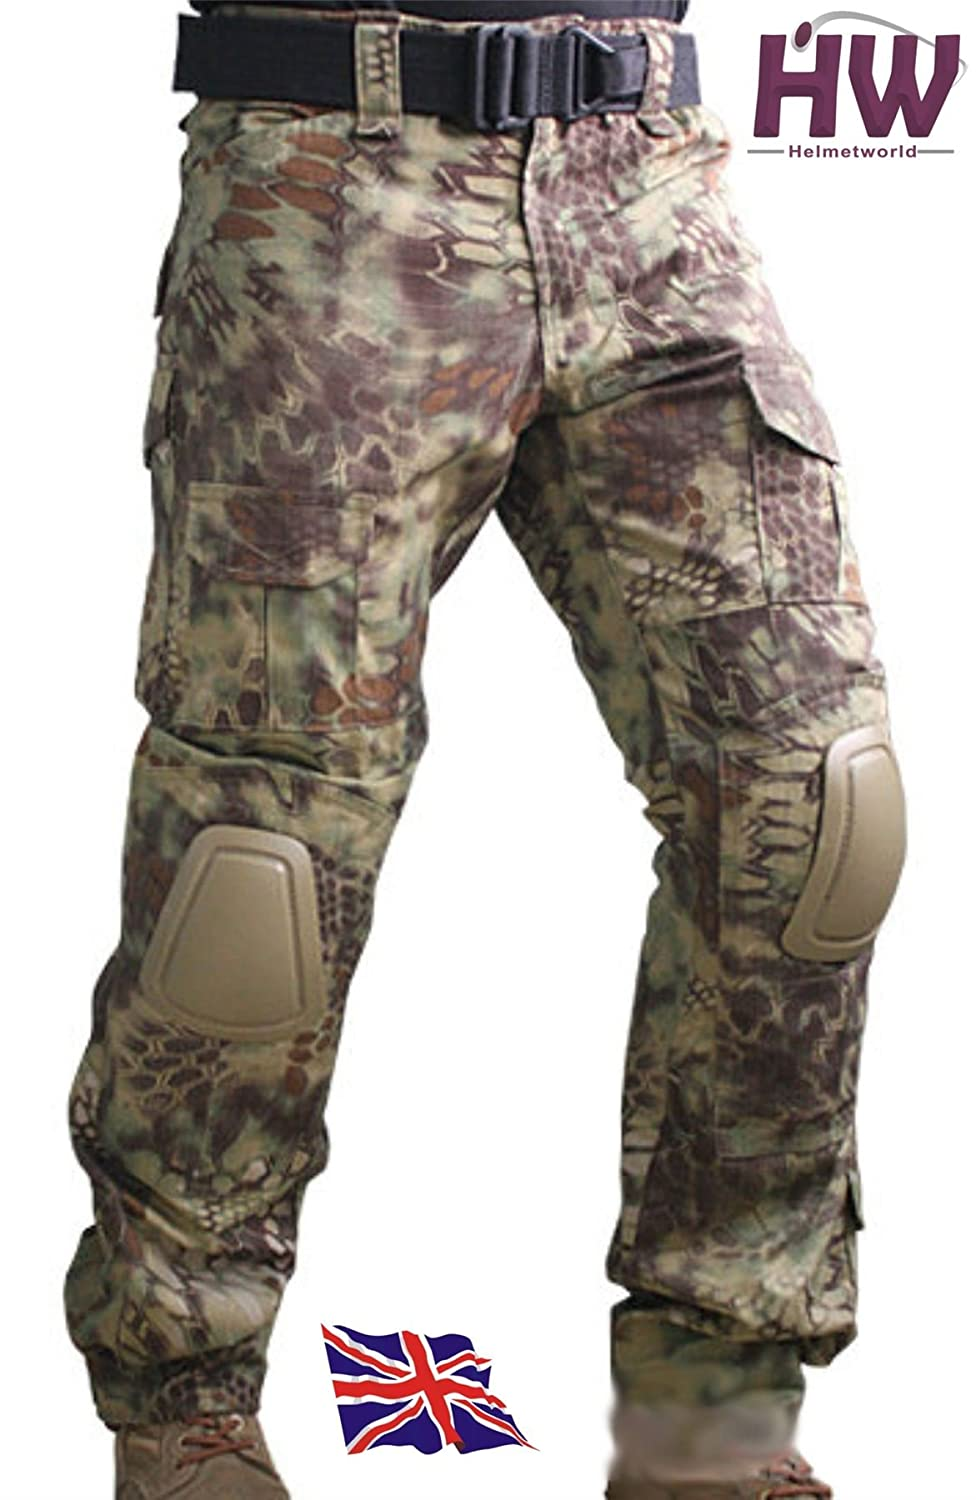 AIRSOFT EMERSON GEN 2 PANTS TROUSERS KRYPTEK MANDRAKE KNEE PADS 32-34 CRYE STYLE